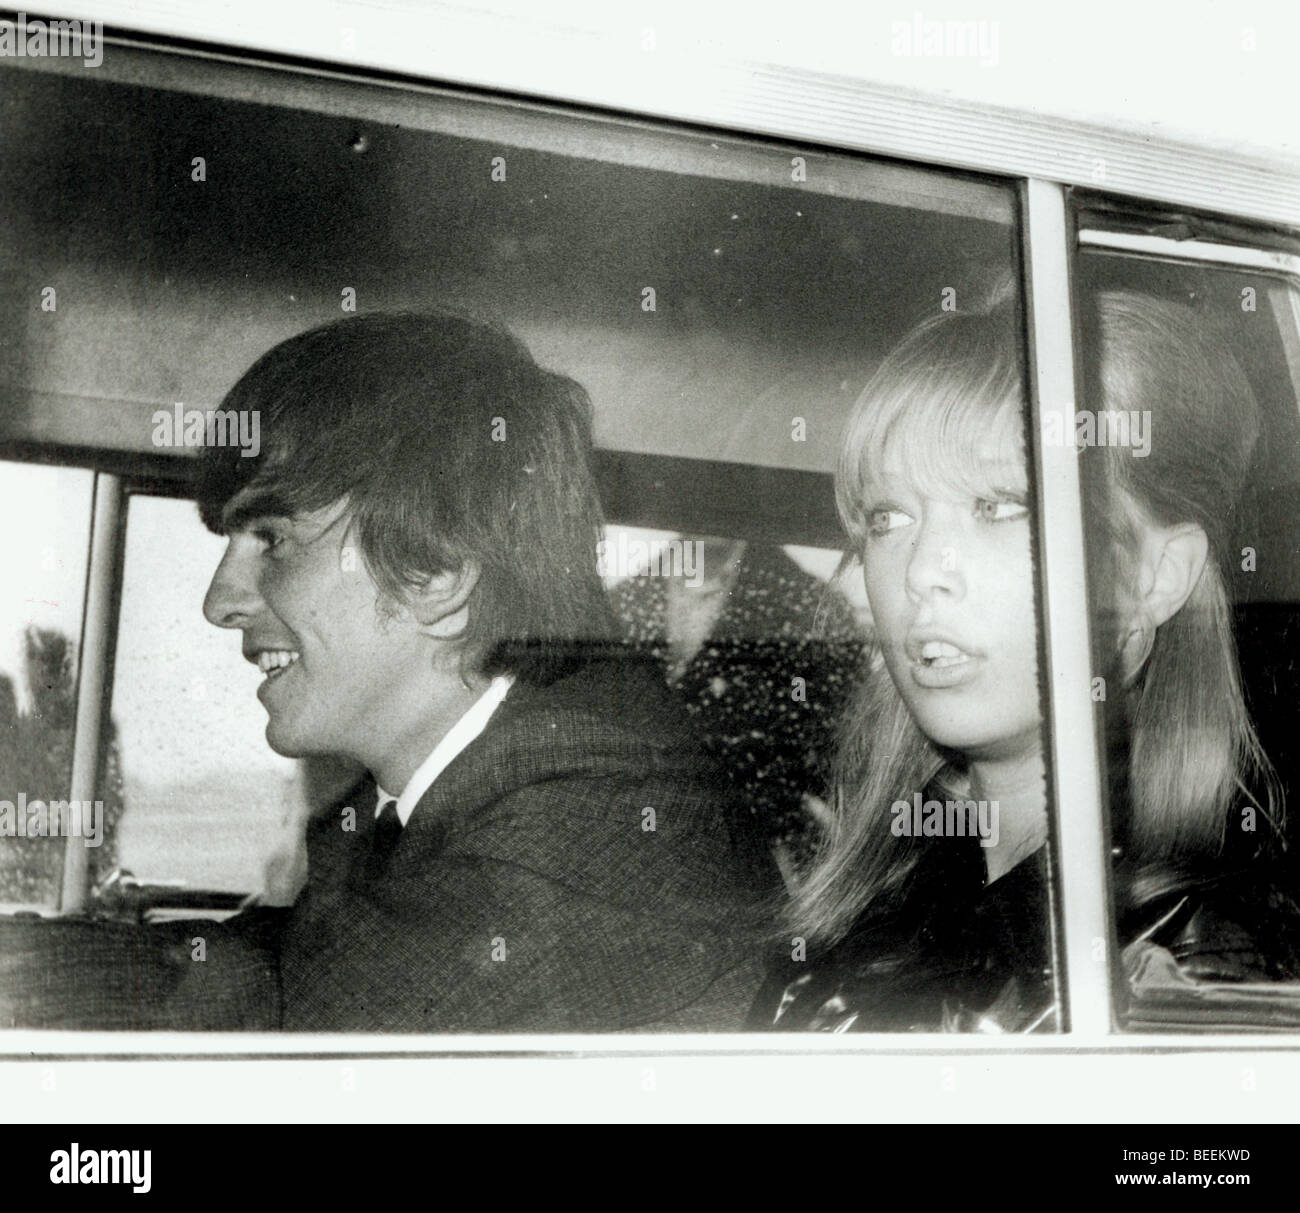 Beatle George Harrison and wife Pattie Boyd returning from the airport - Stock Image